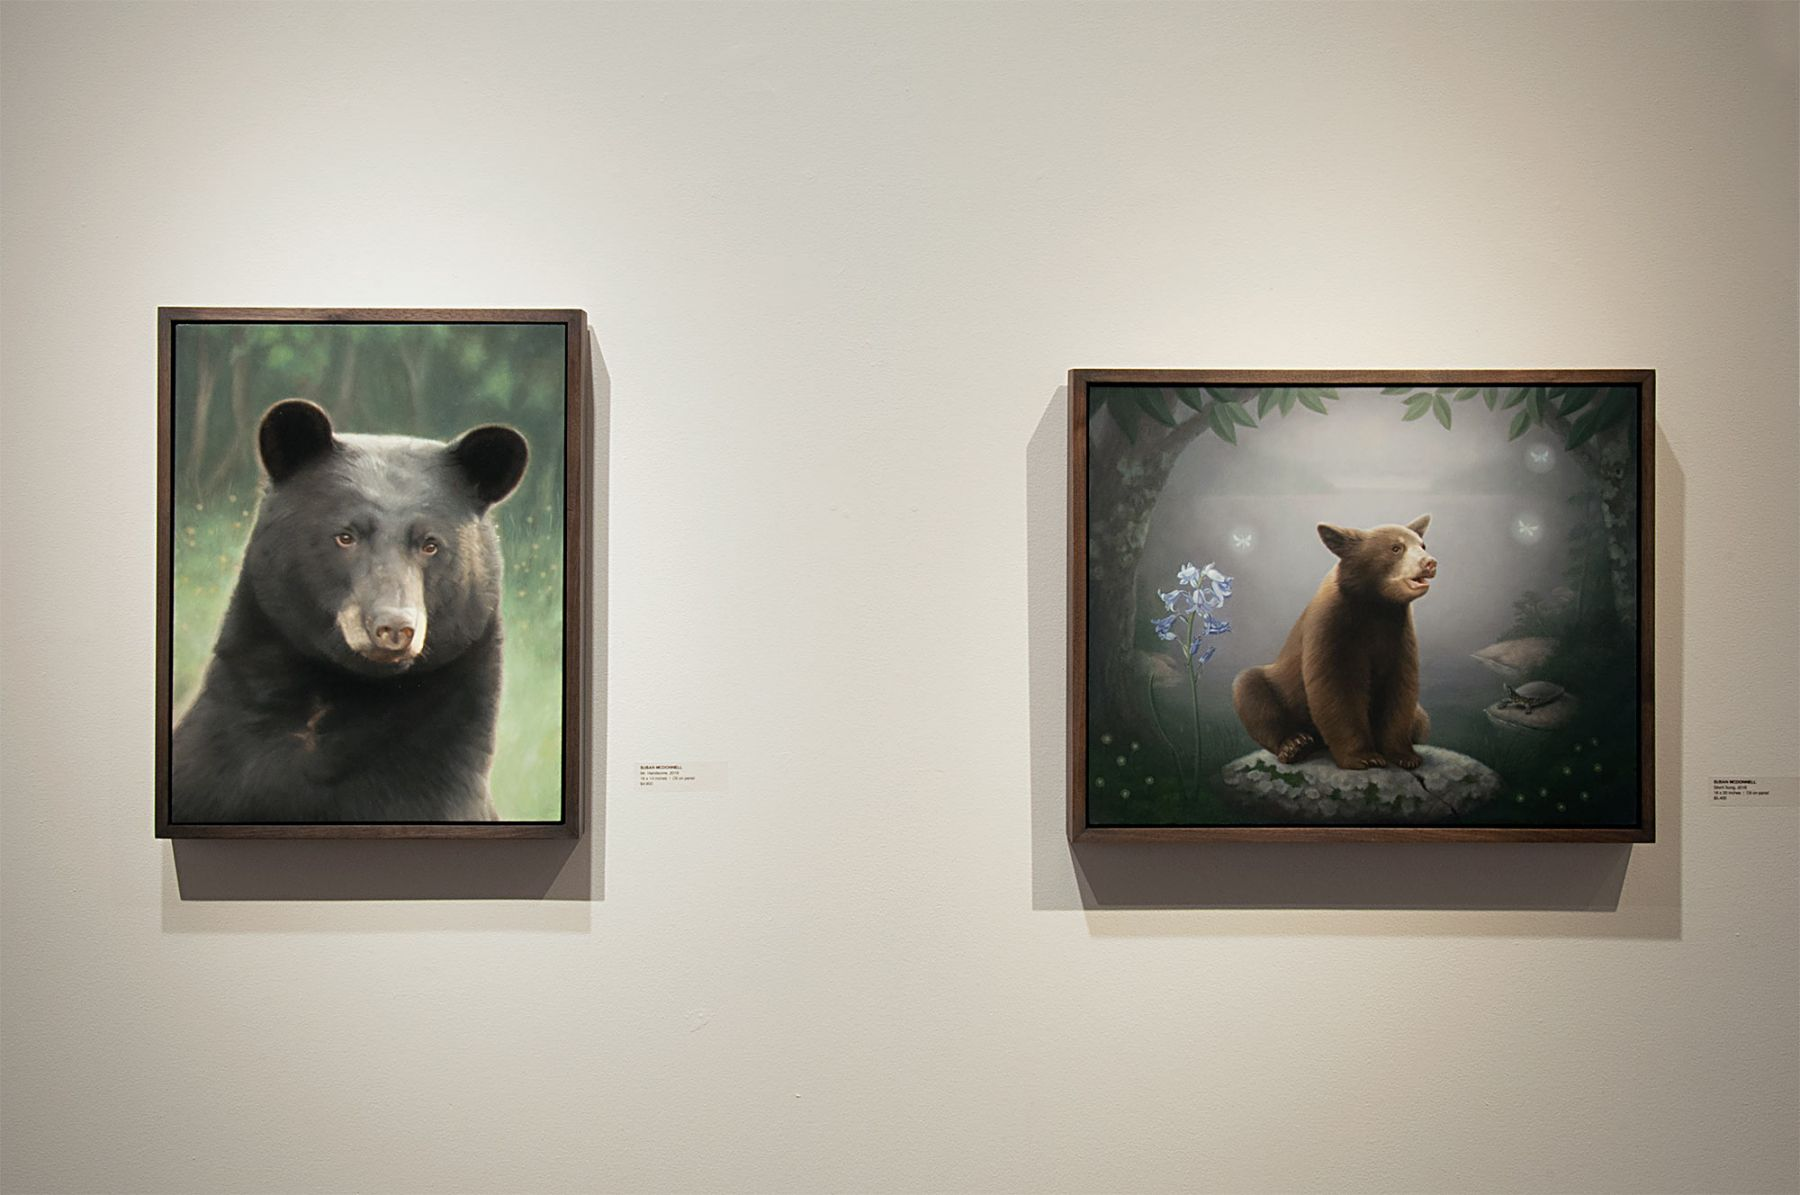 Contemporary Bear Area Artists Installation photograph, Susan McDonnell